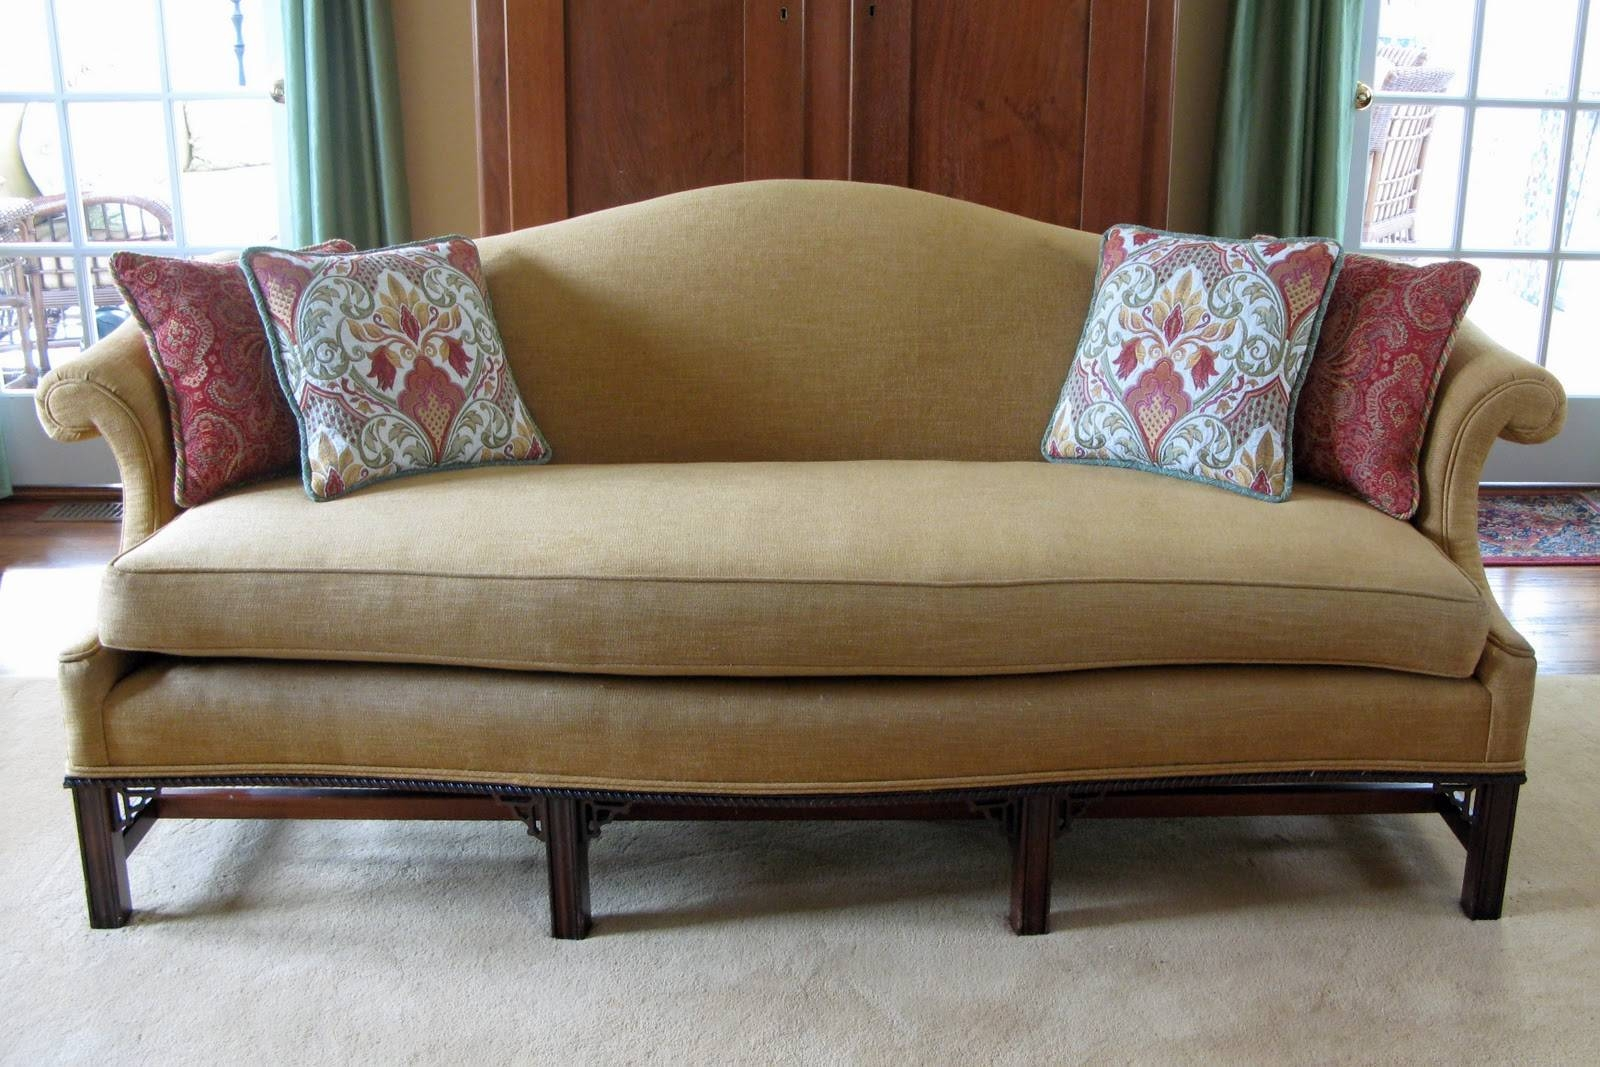 Wonderful Sofa: Cool Couches For Provides A Warm To Comfortable Feel And Low For Cool  Cheap